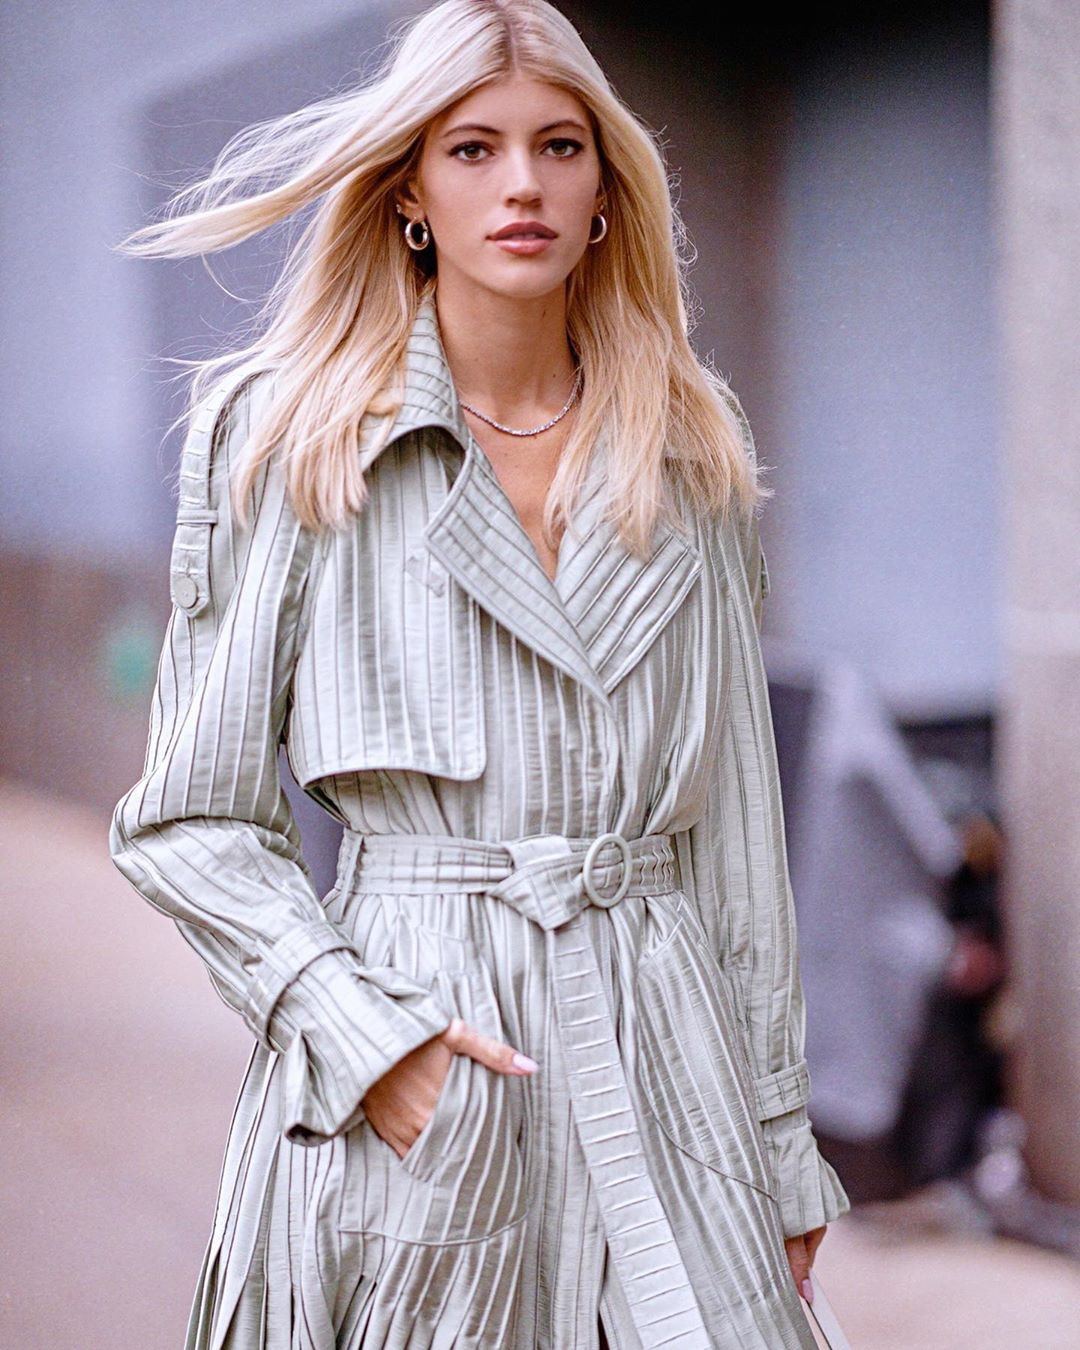 Devon Windsor in blond hairs, Long Hairstyle Girls, cute and sexy Hairstyle